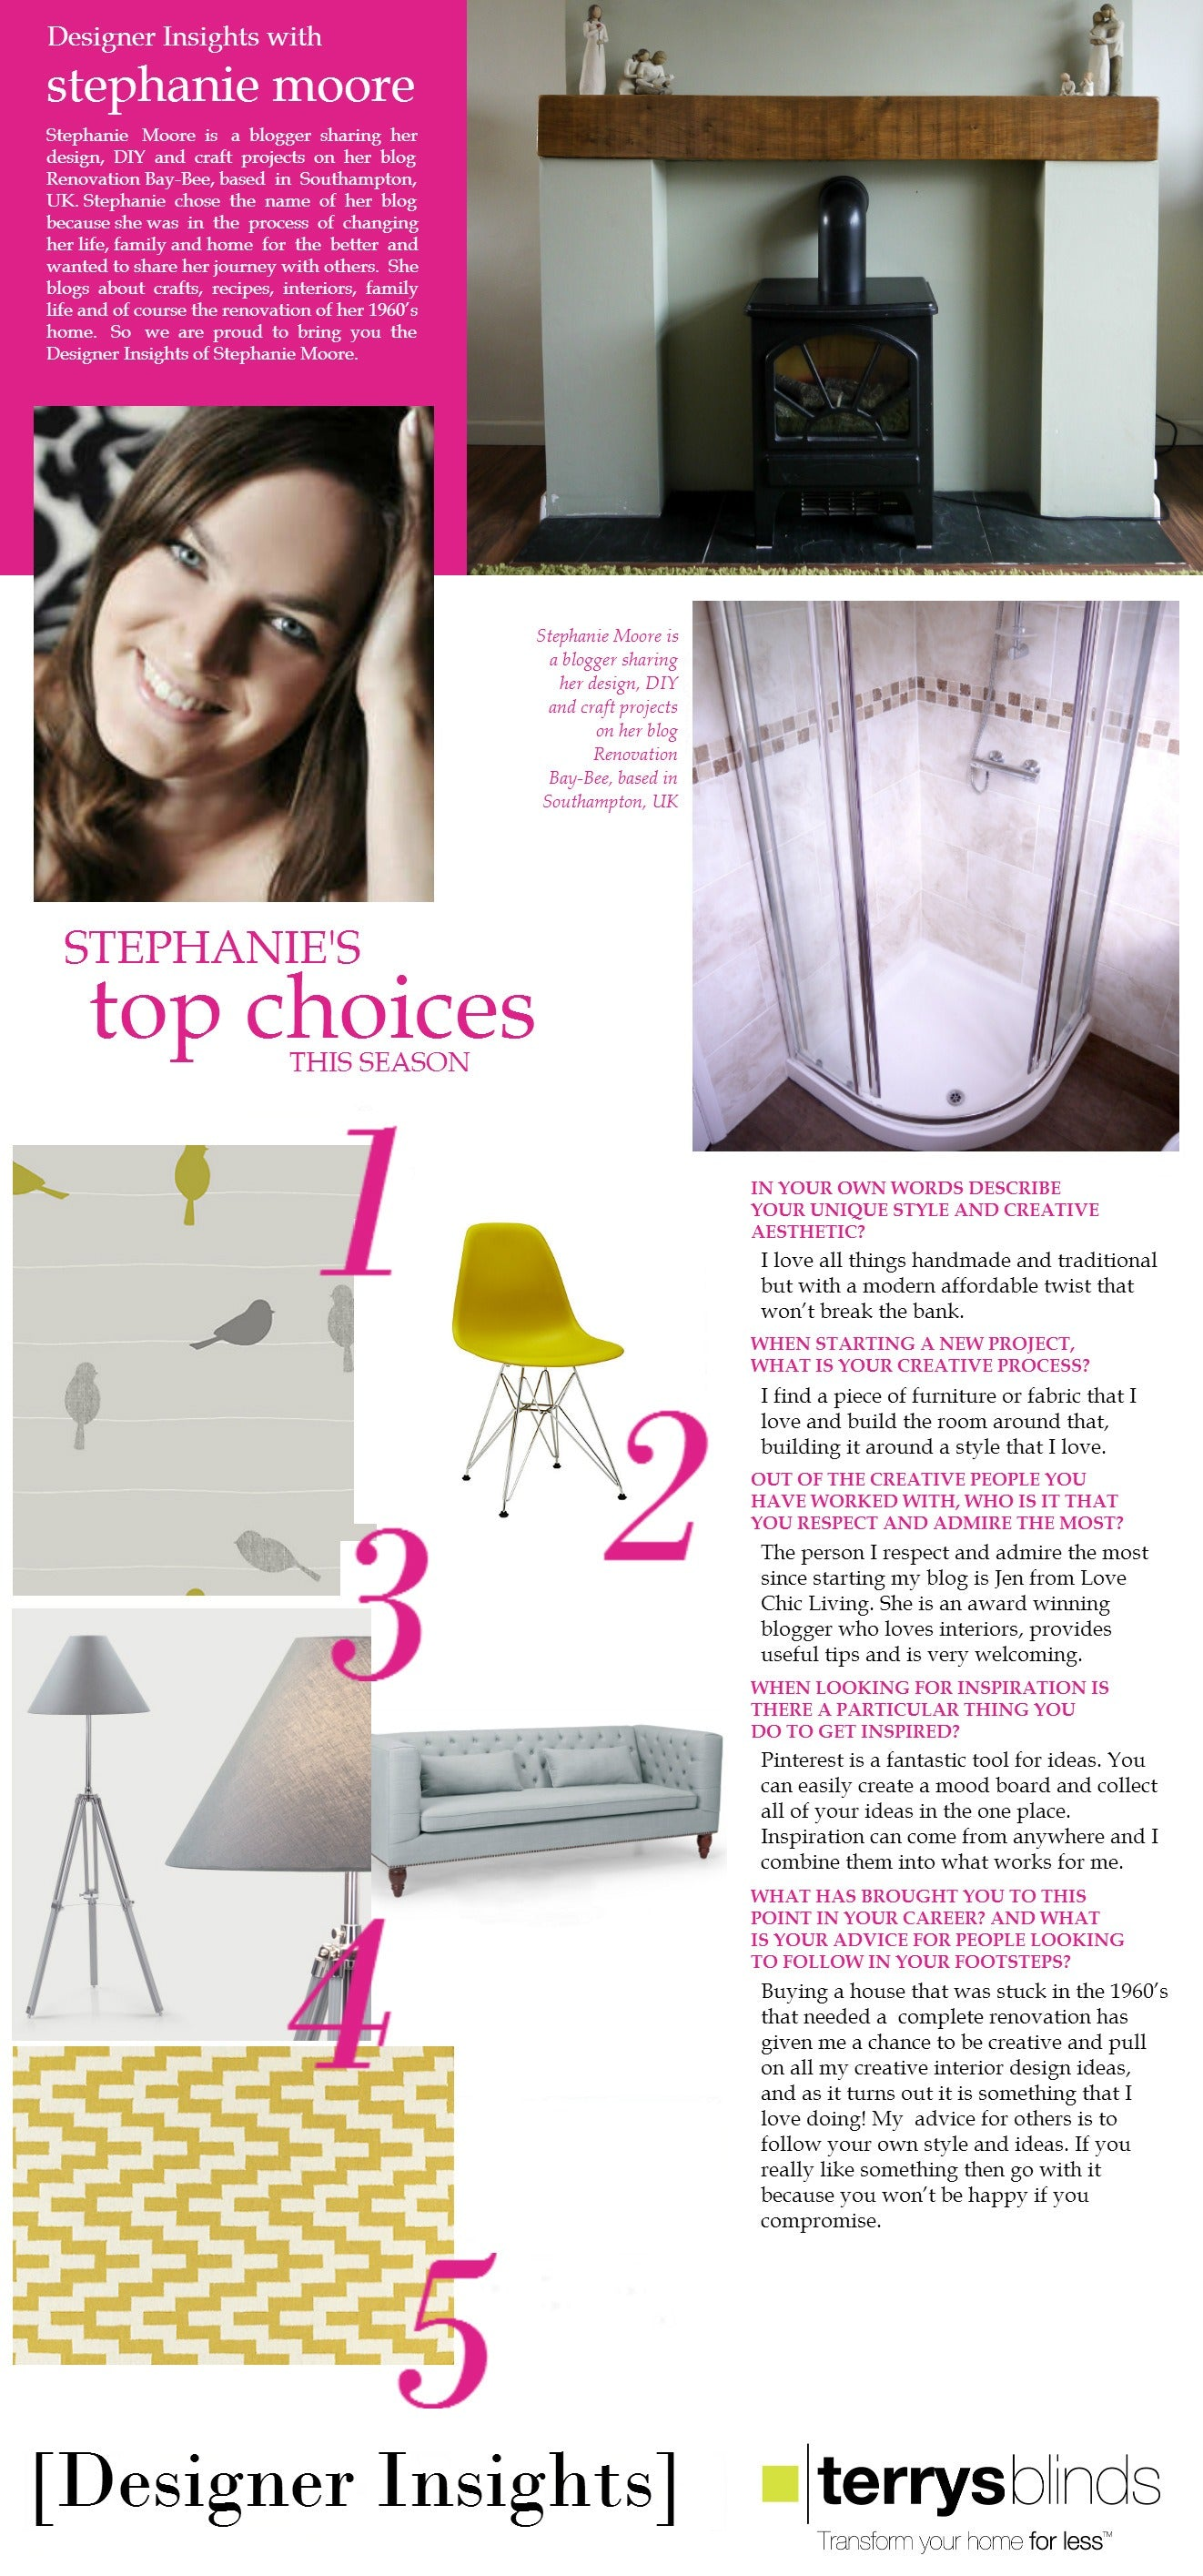 Designer Insights - Stephanie Moore